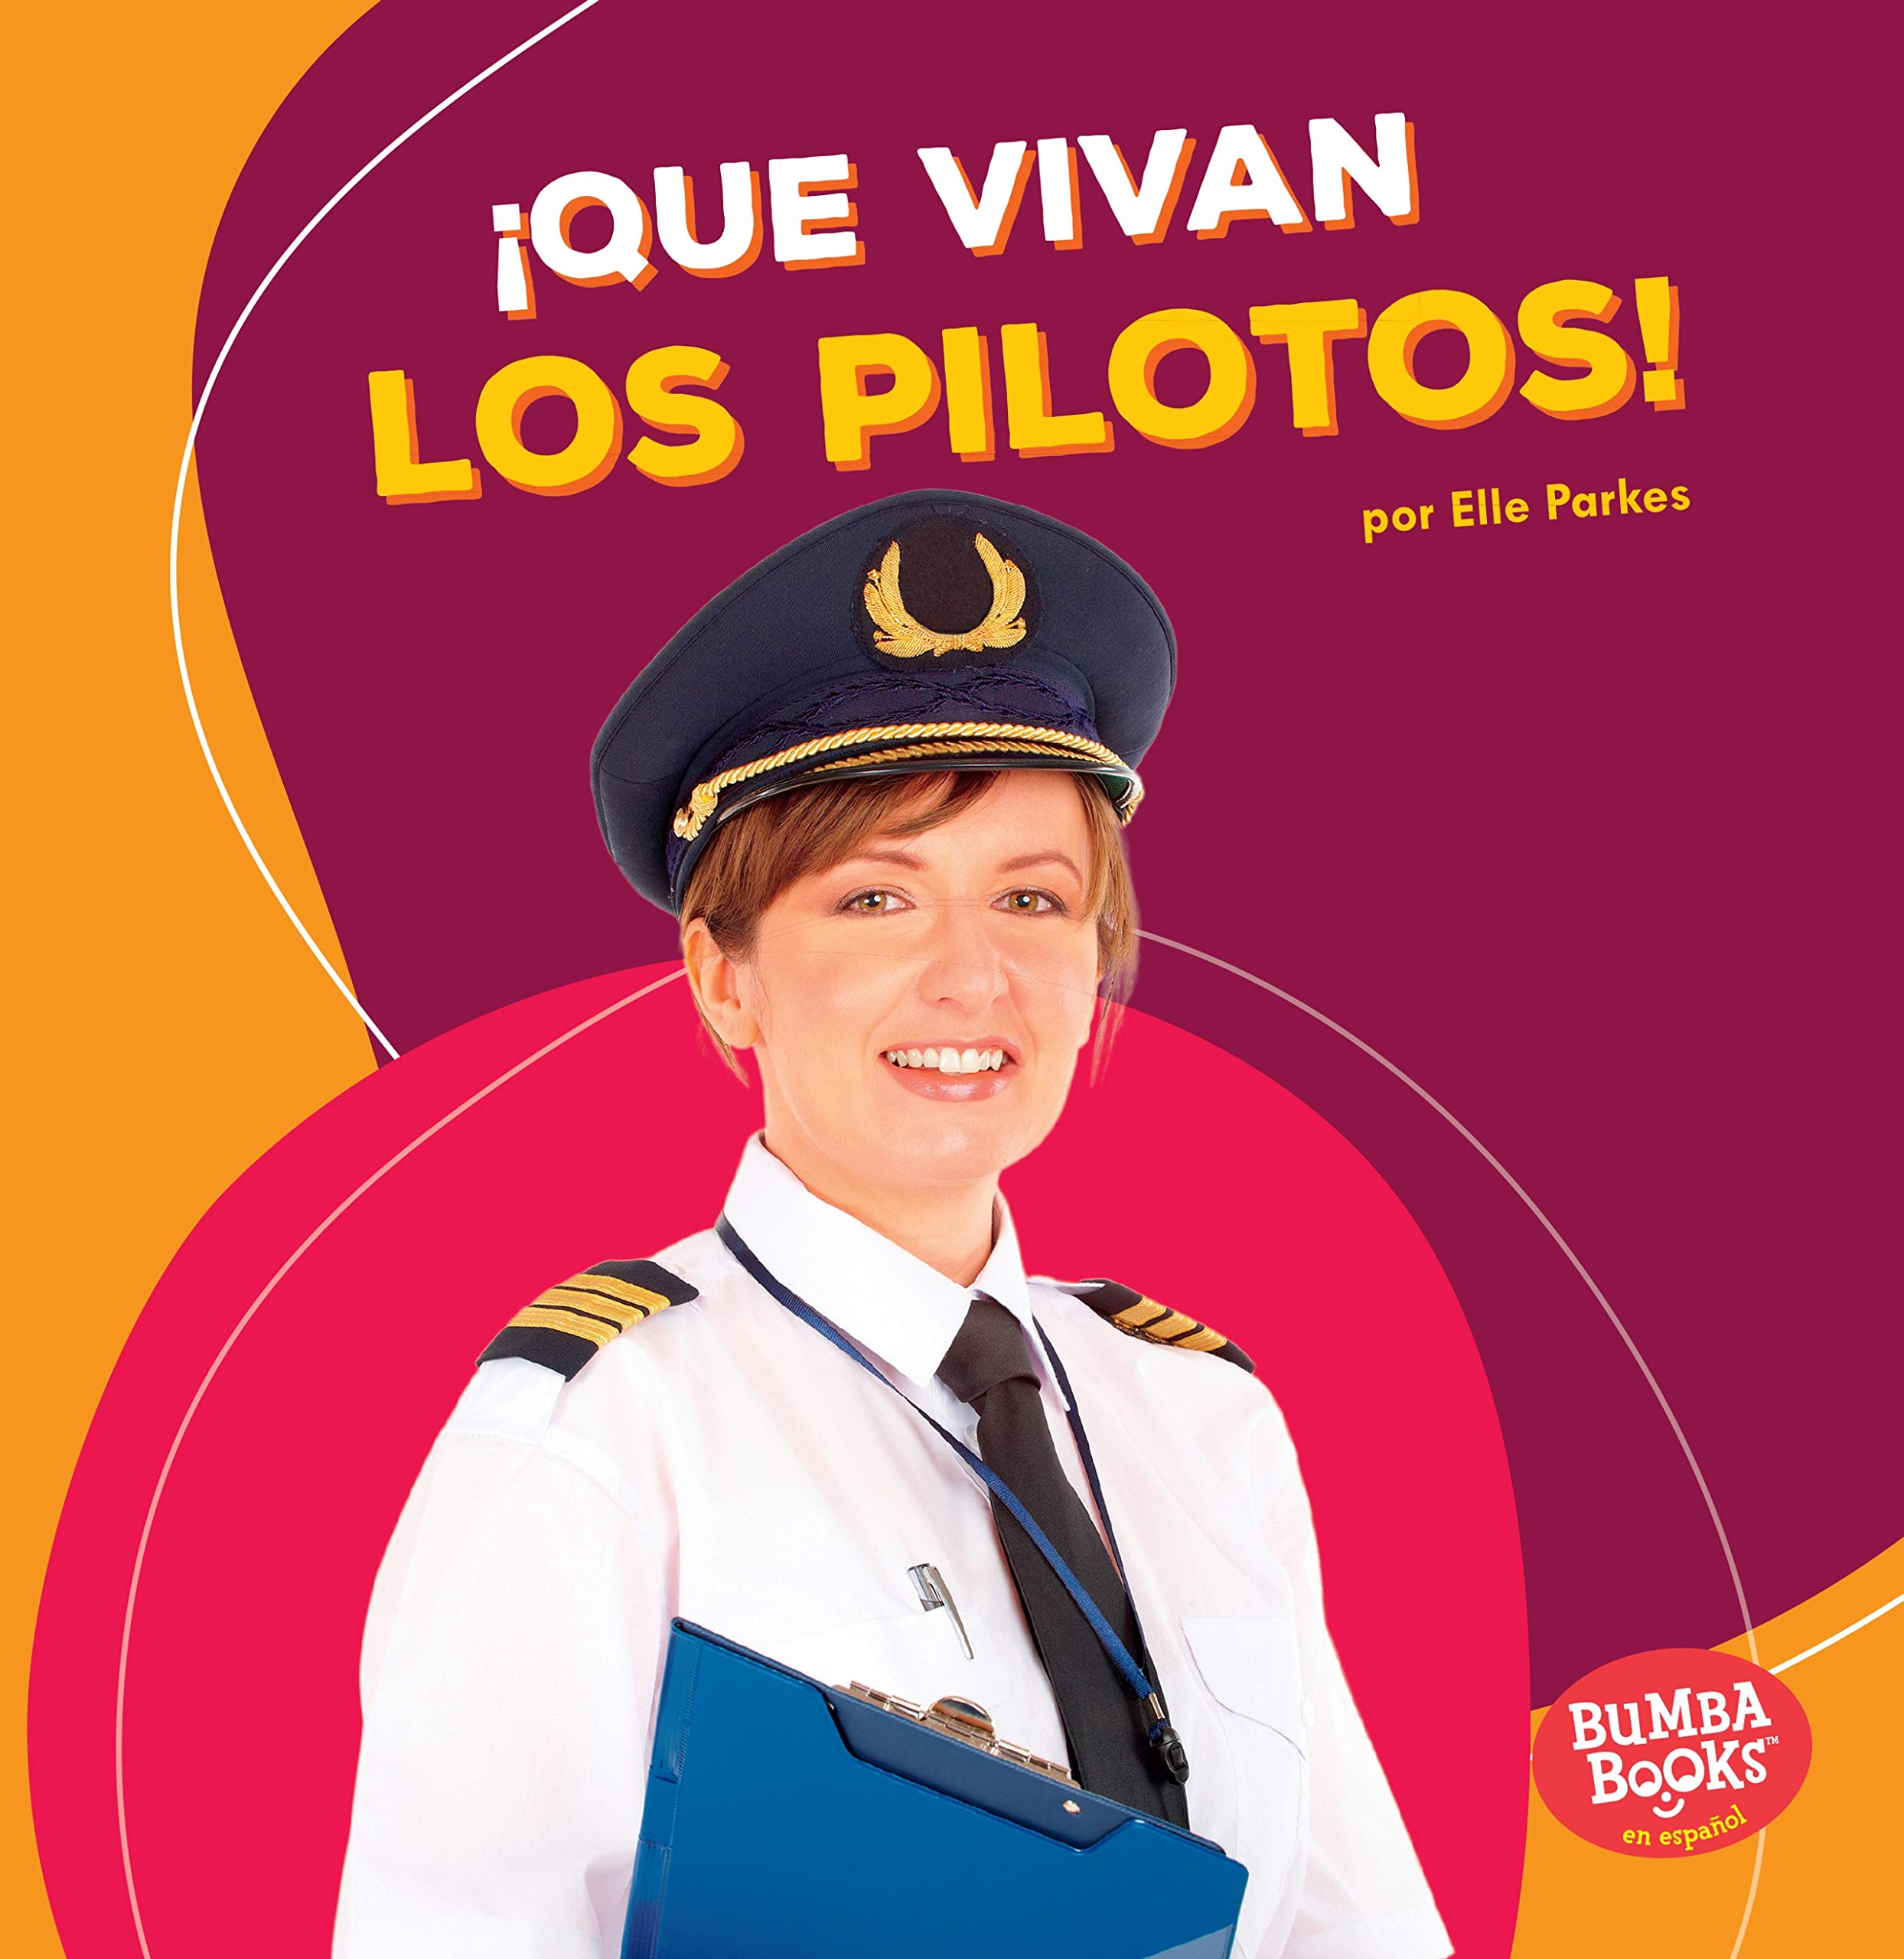 Download Que vivan los pilotos / Hooray for Pilots (Que Vivan Los Ayudantes Comunitarios / Hooray for Community Helpers) (Spanish Edition) (Bumba books en ... comunitarios / Hooray for Community Helpers) pdf